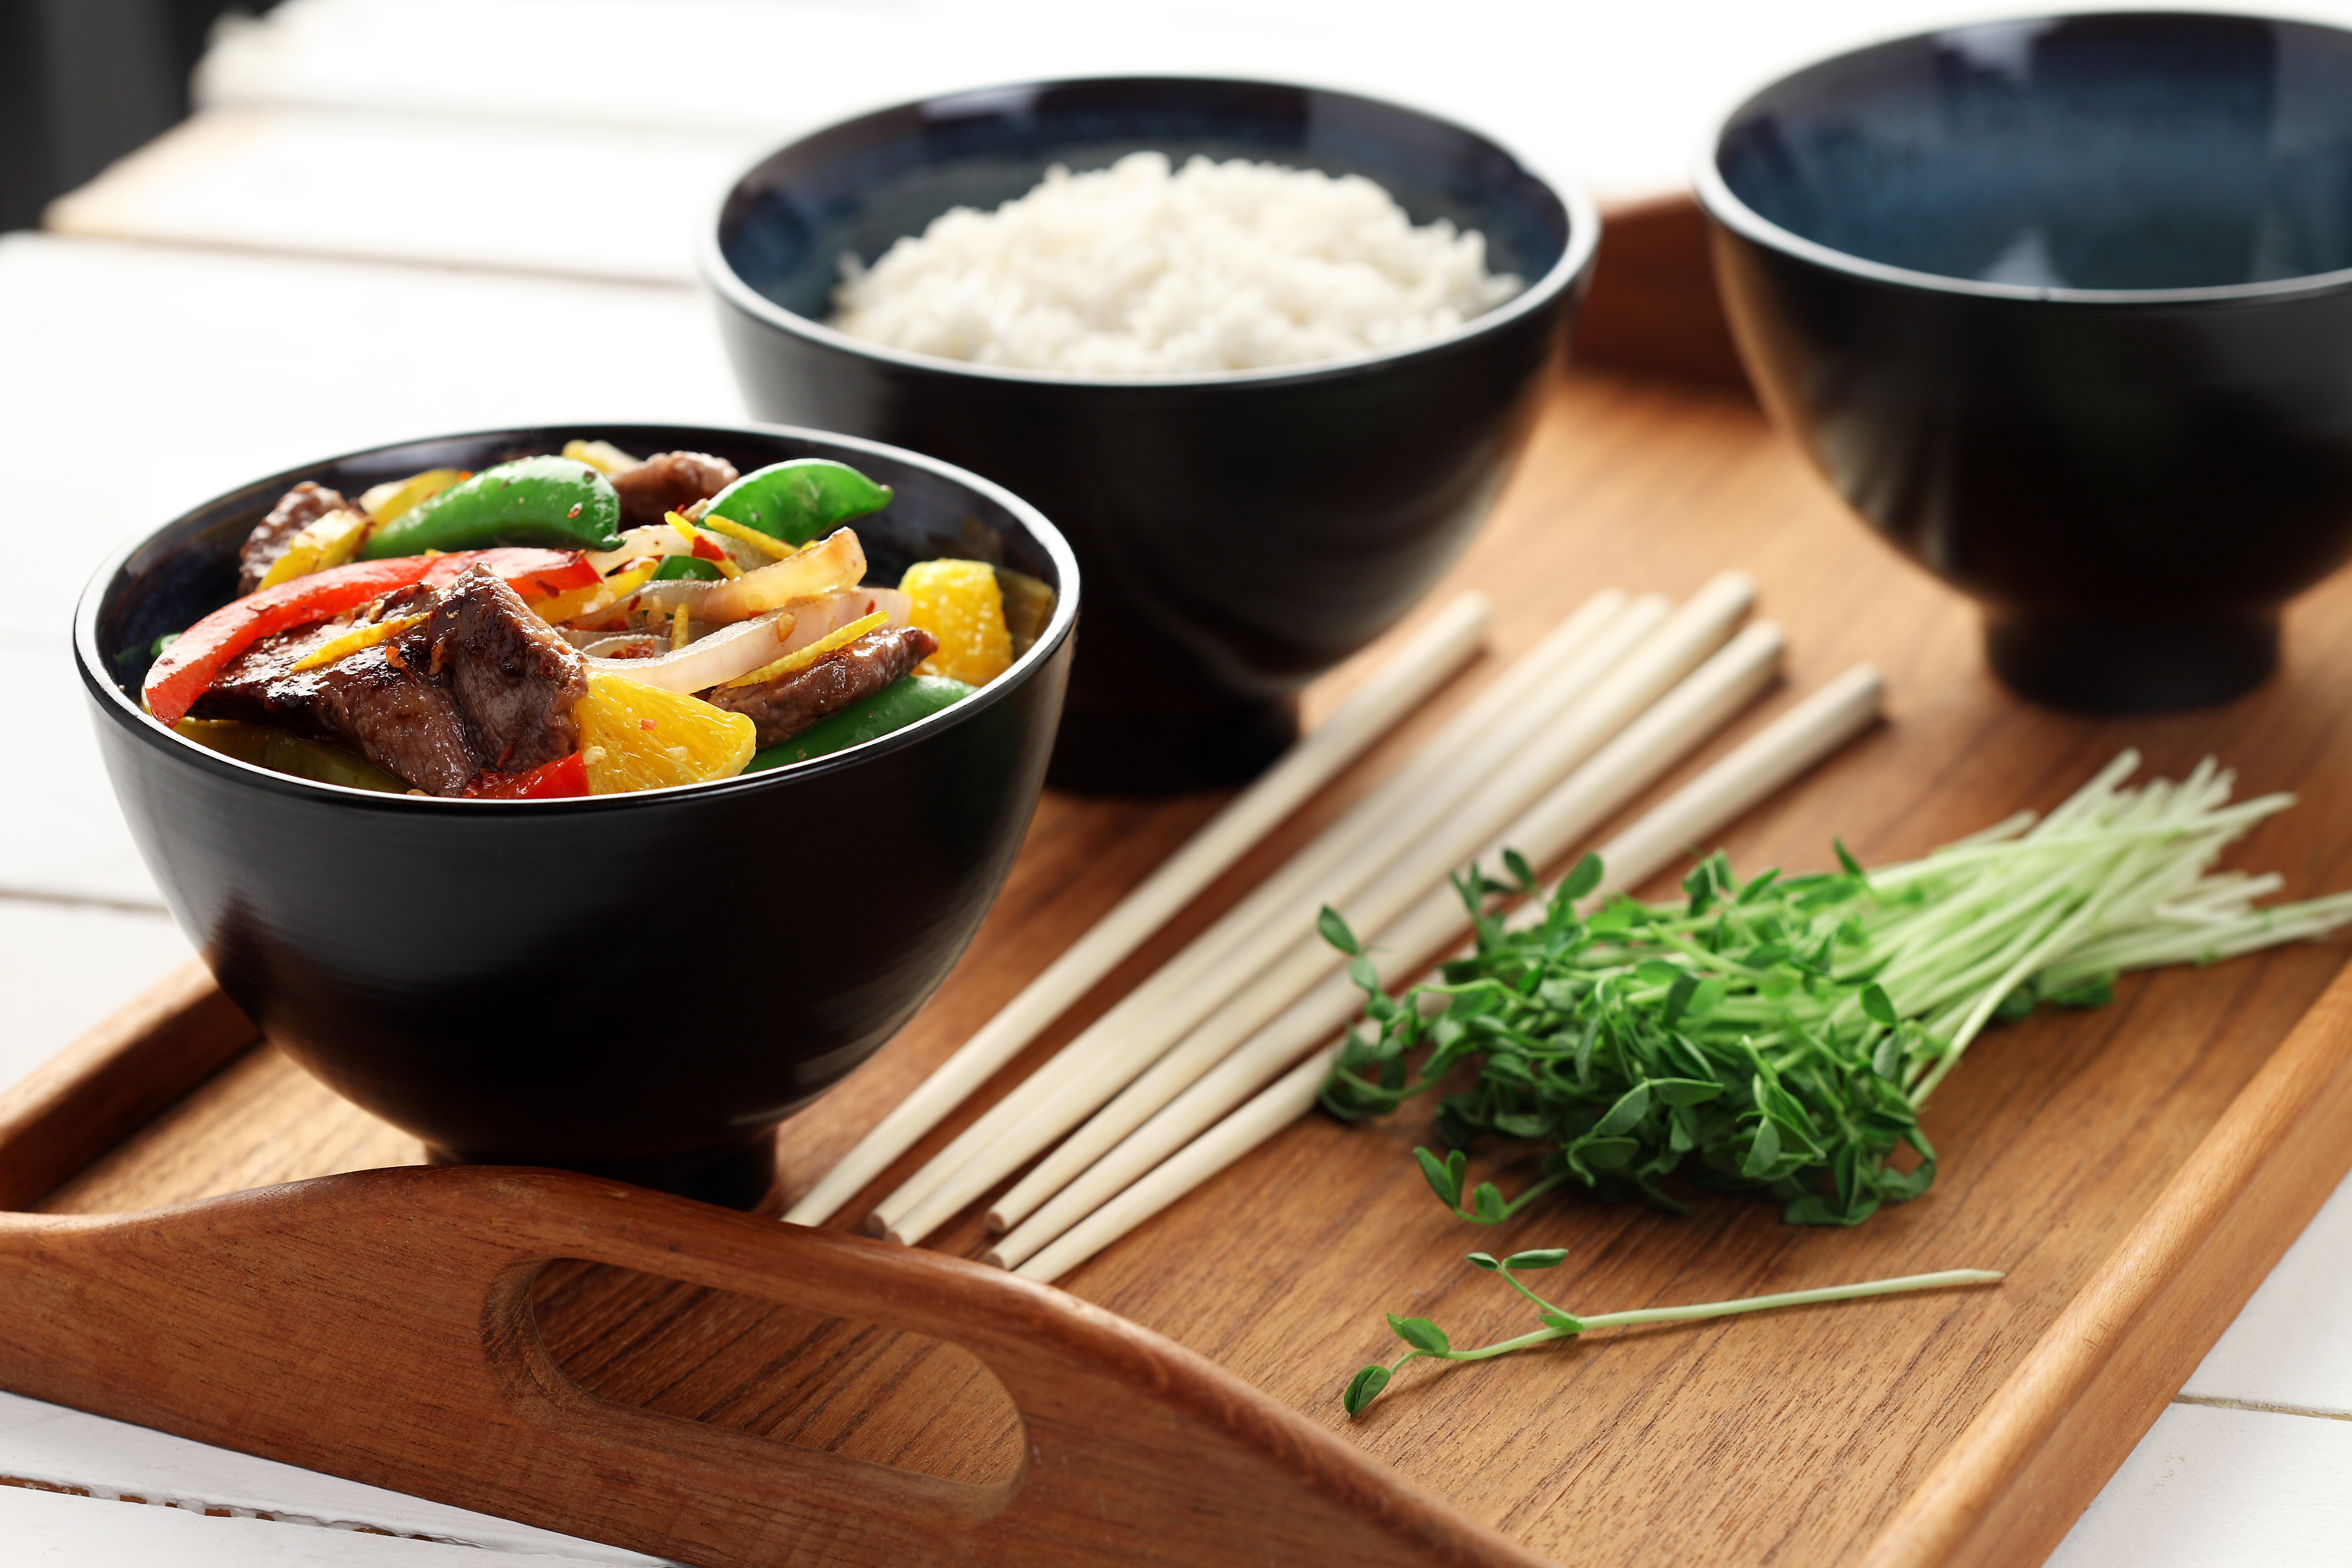 Spicy beef with oranges in black bowls on a wooden tray